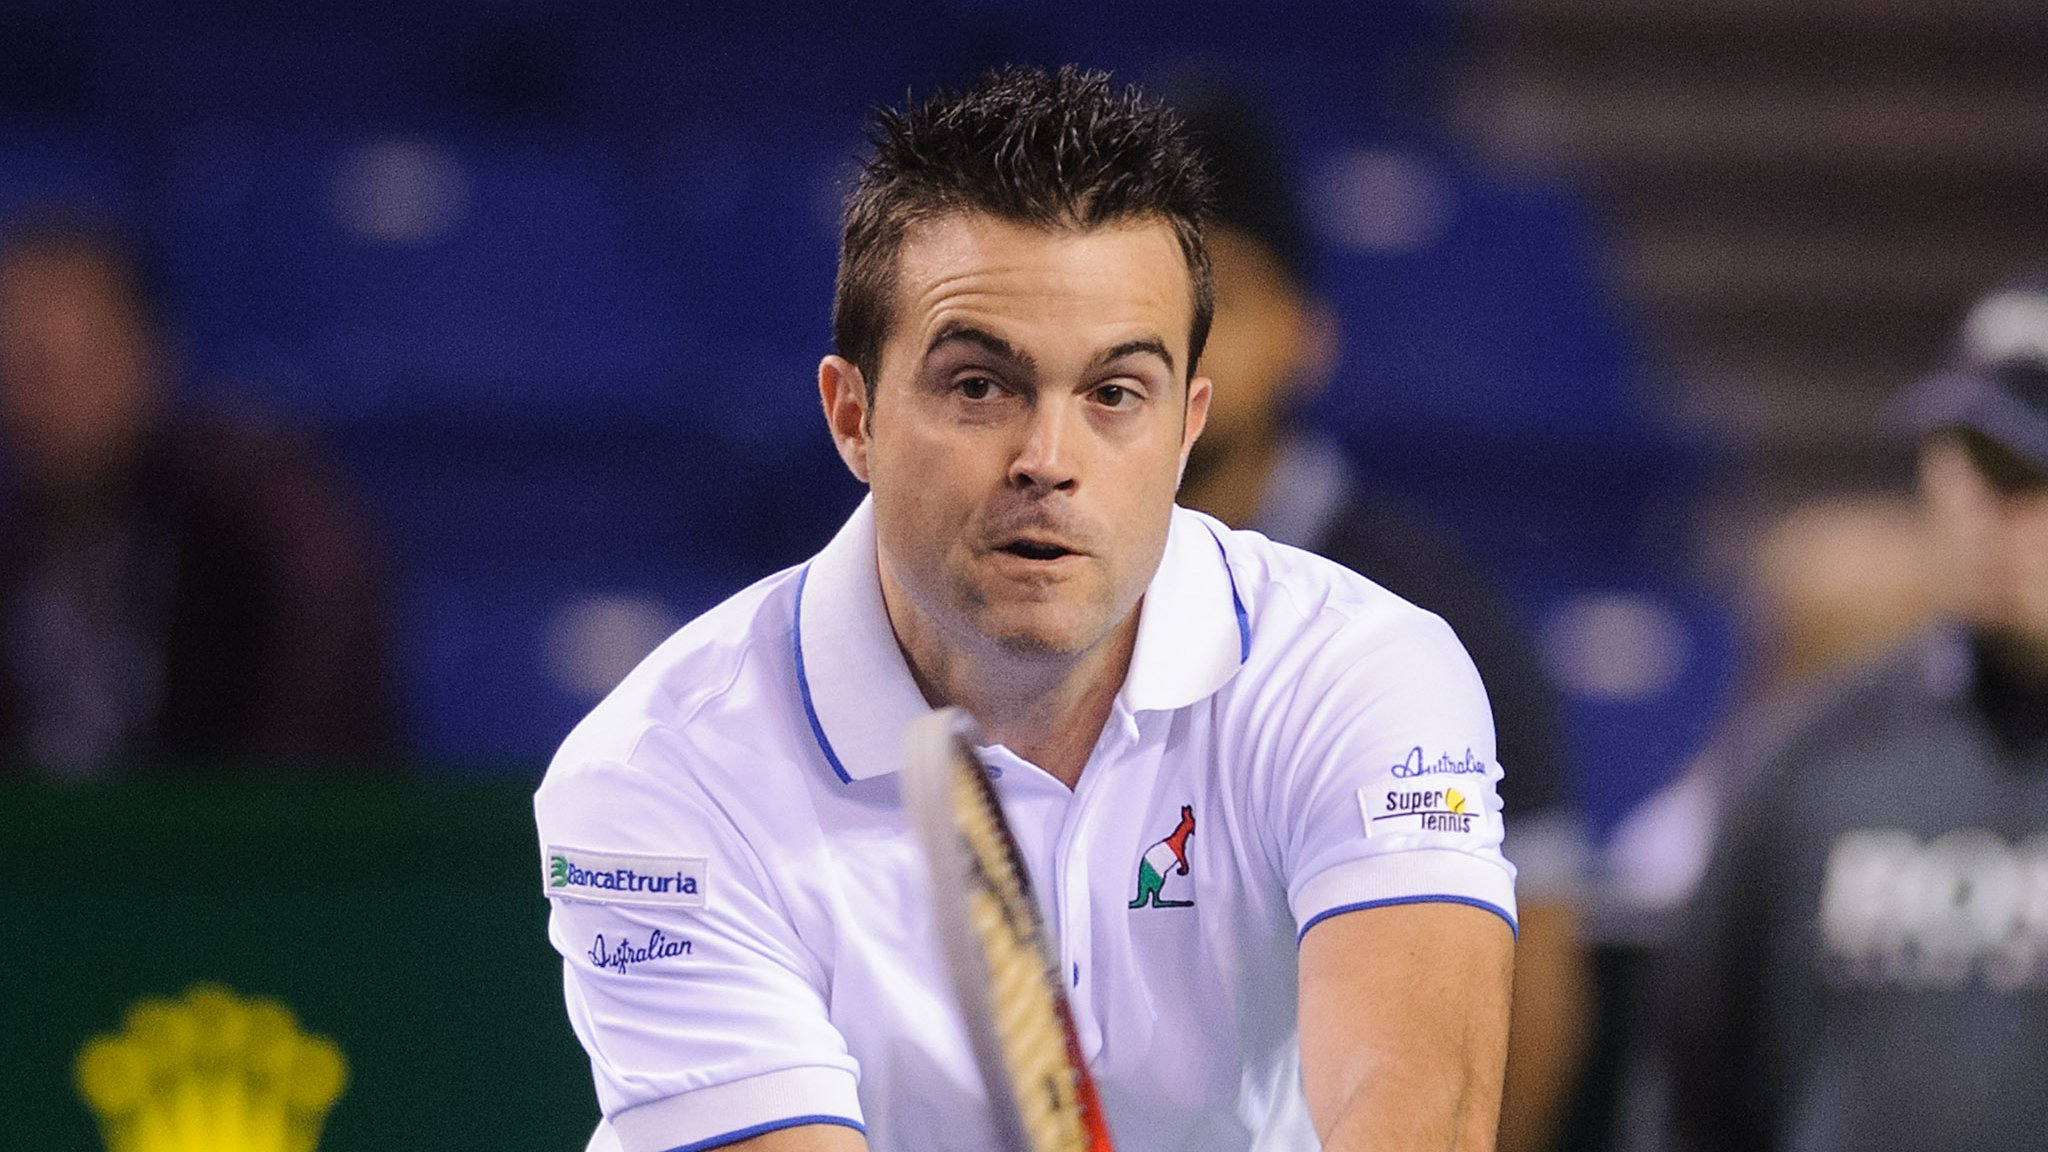 Bracciali gets life ban for match-fixing, Starace also suspended